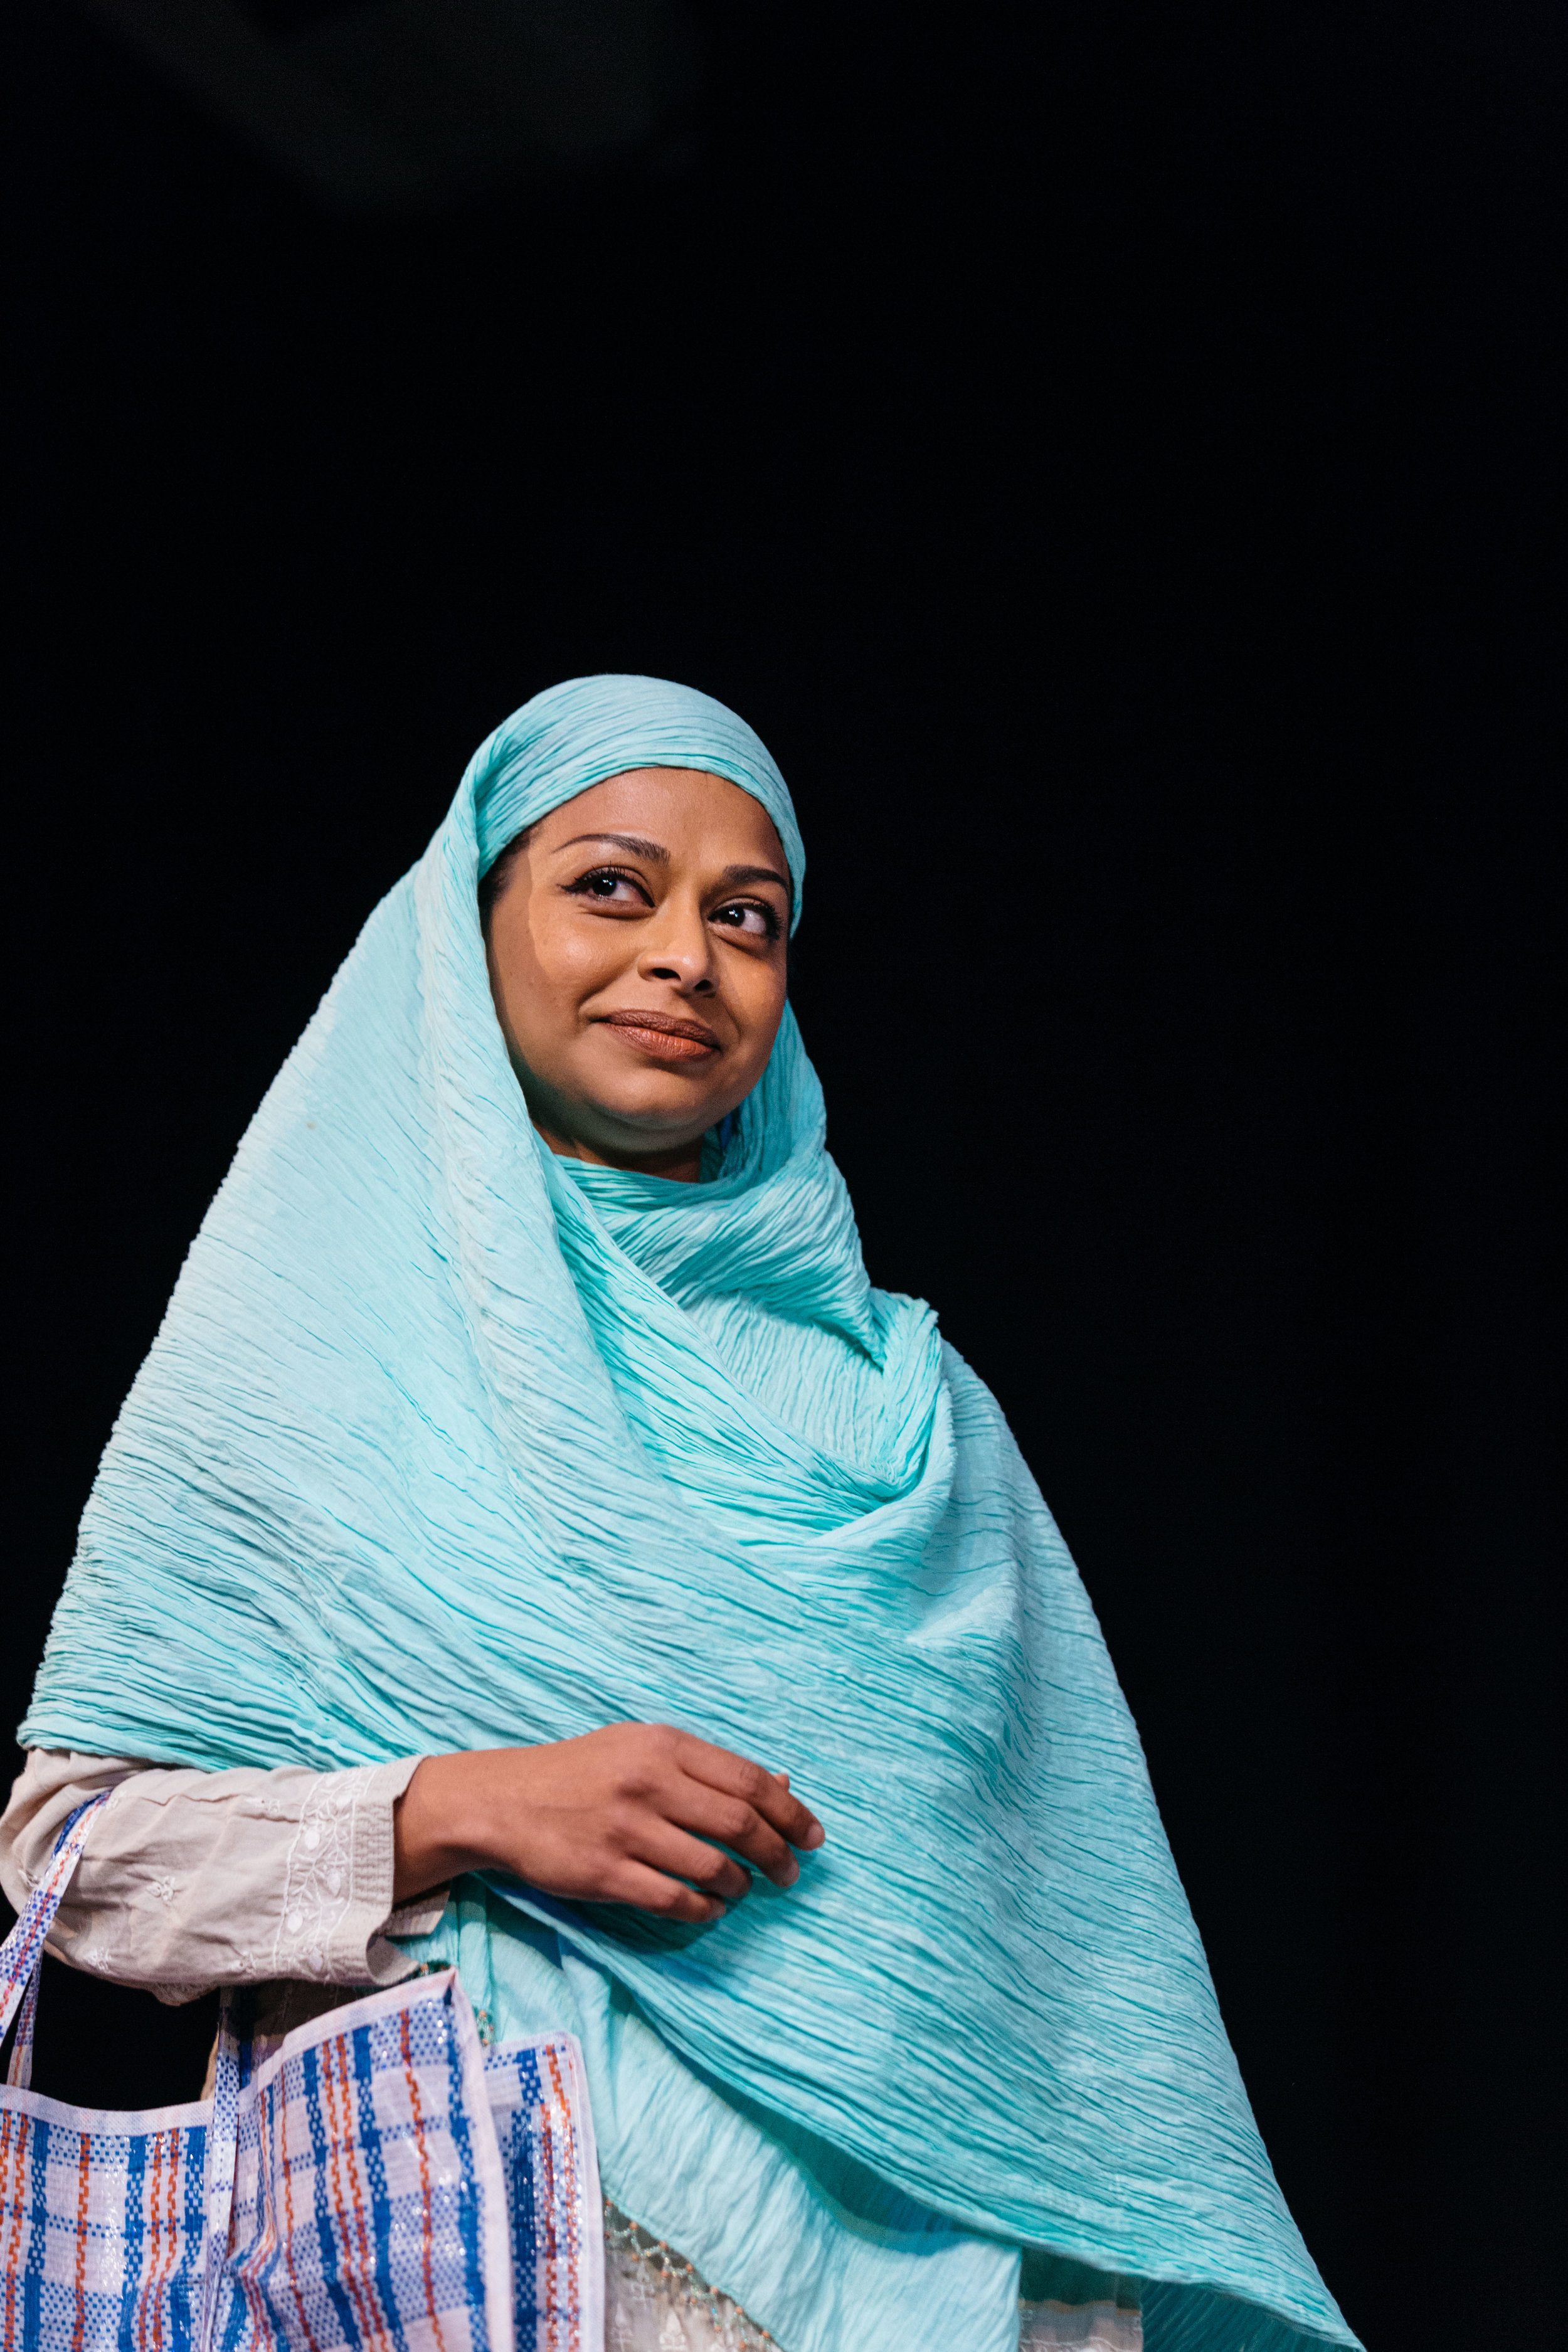 Ayesha Darker in Hijabi Monologues London directed by Milli Bhatia-742 ©helenmurray.jpg